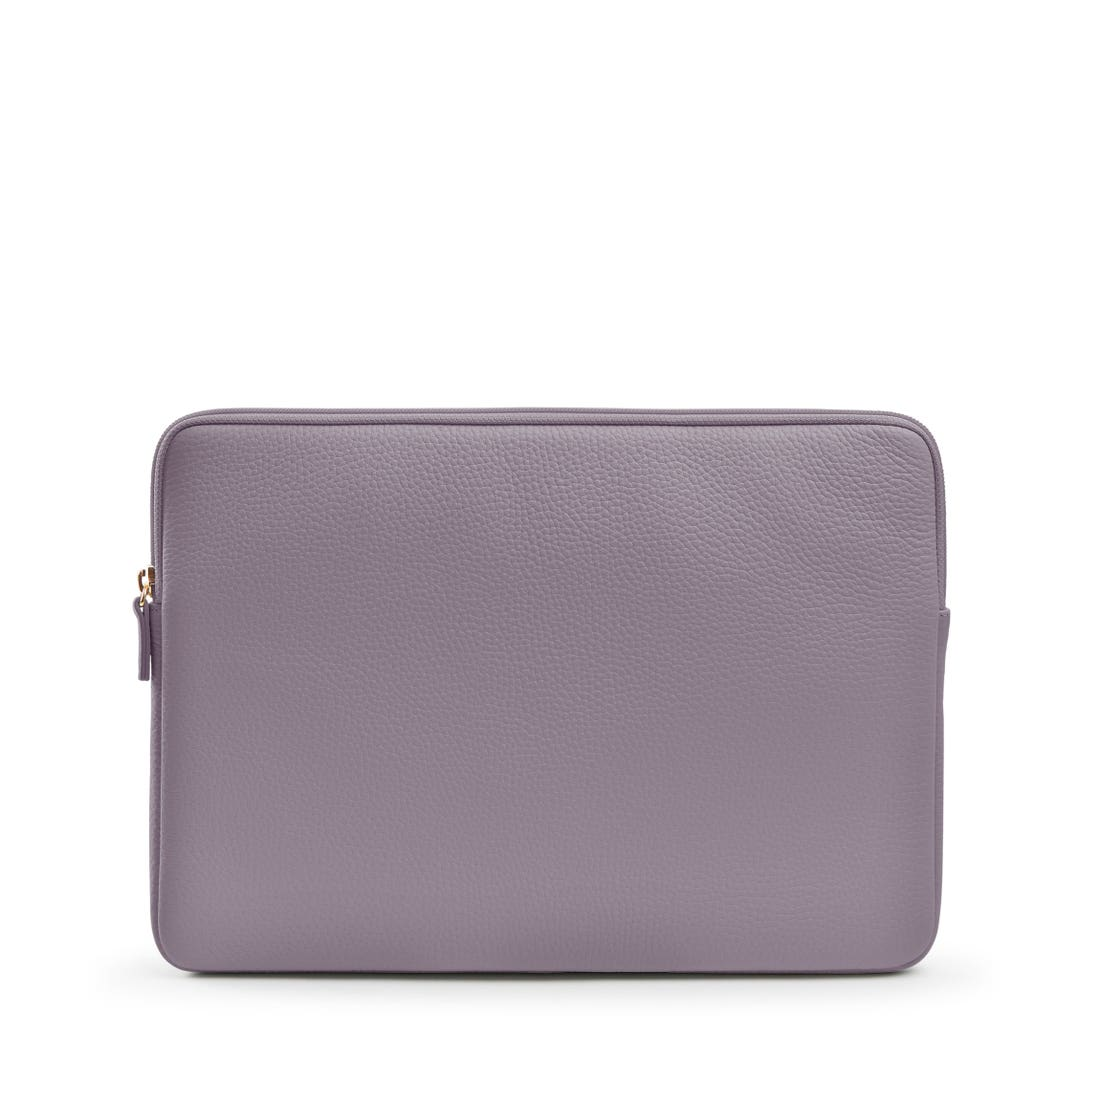 13 Inch MacBook Air Retina Sleeve